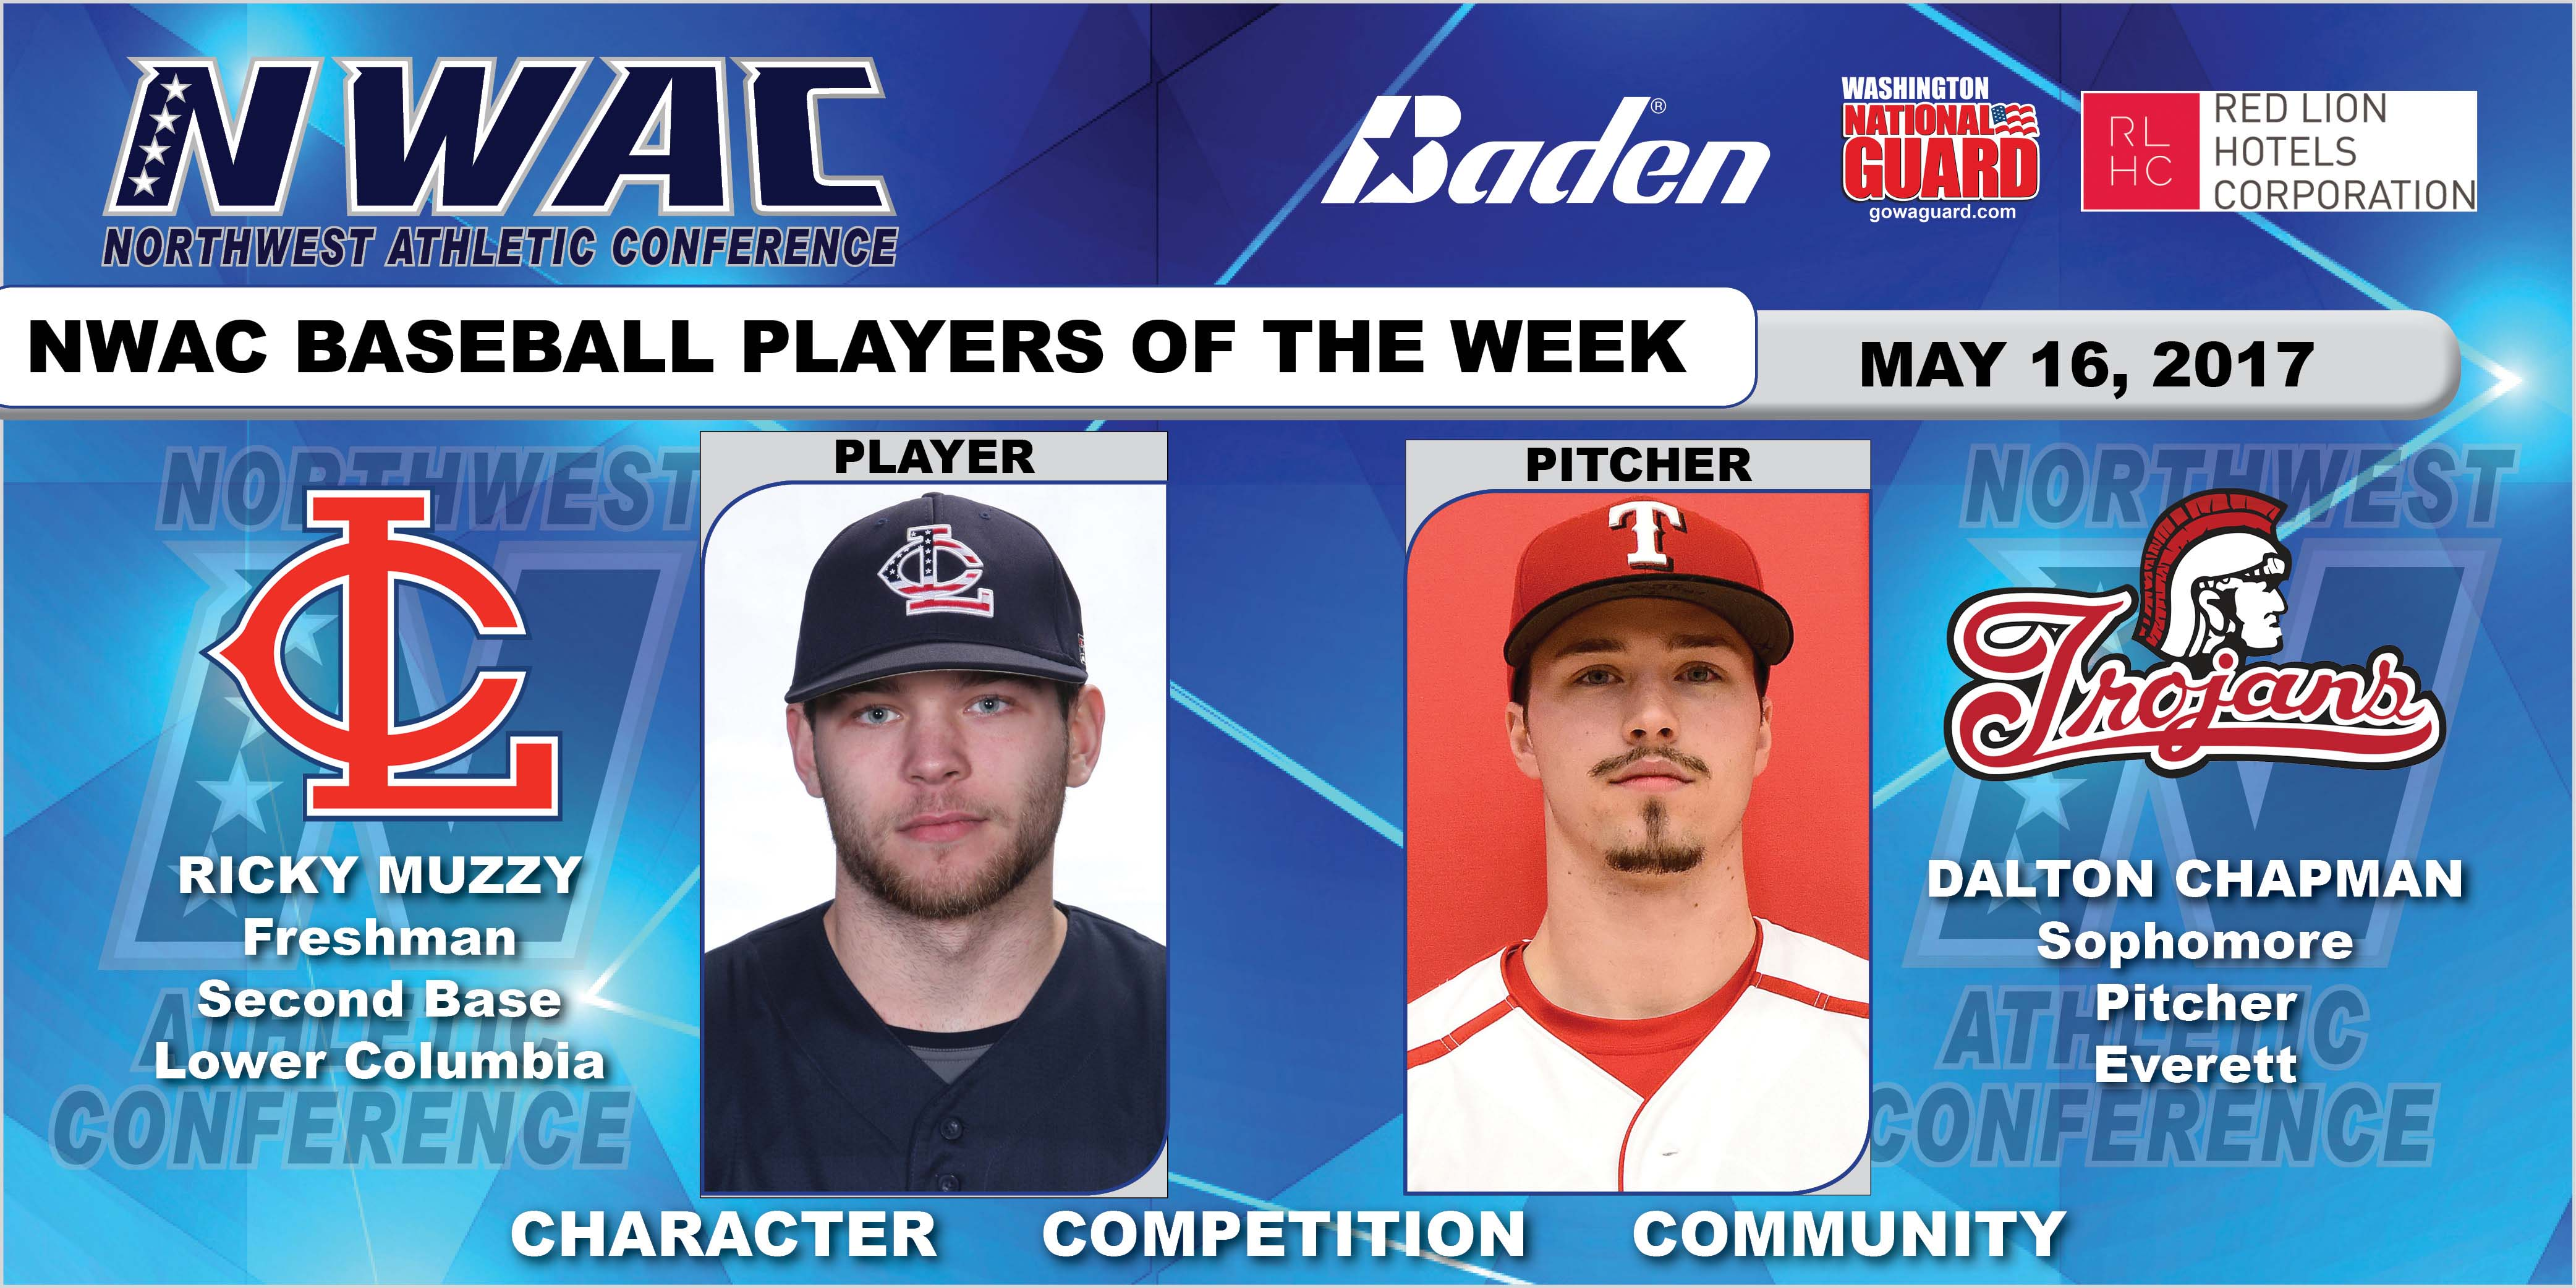 Ricky Muzzy and Dalton Chapman players of the week collage